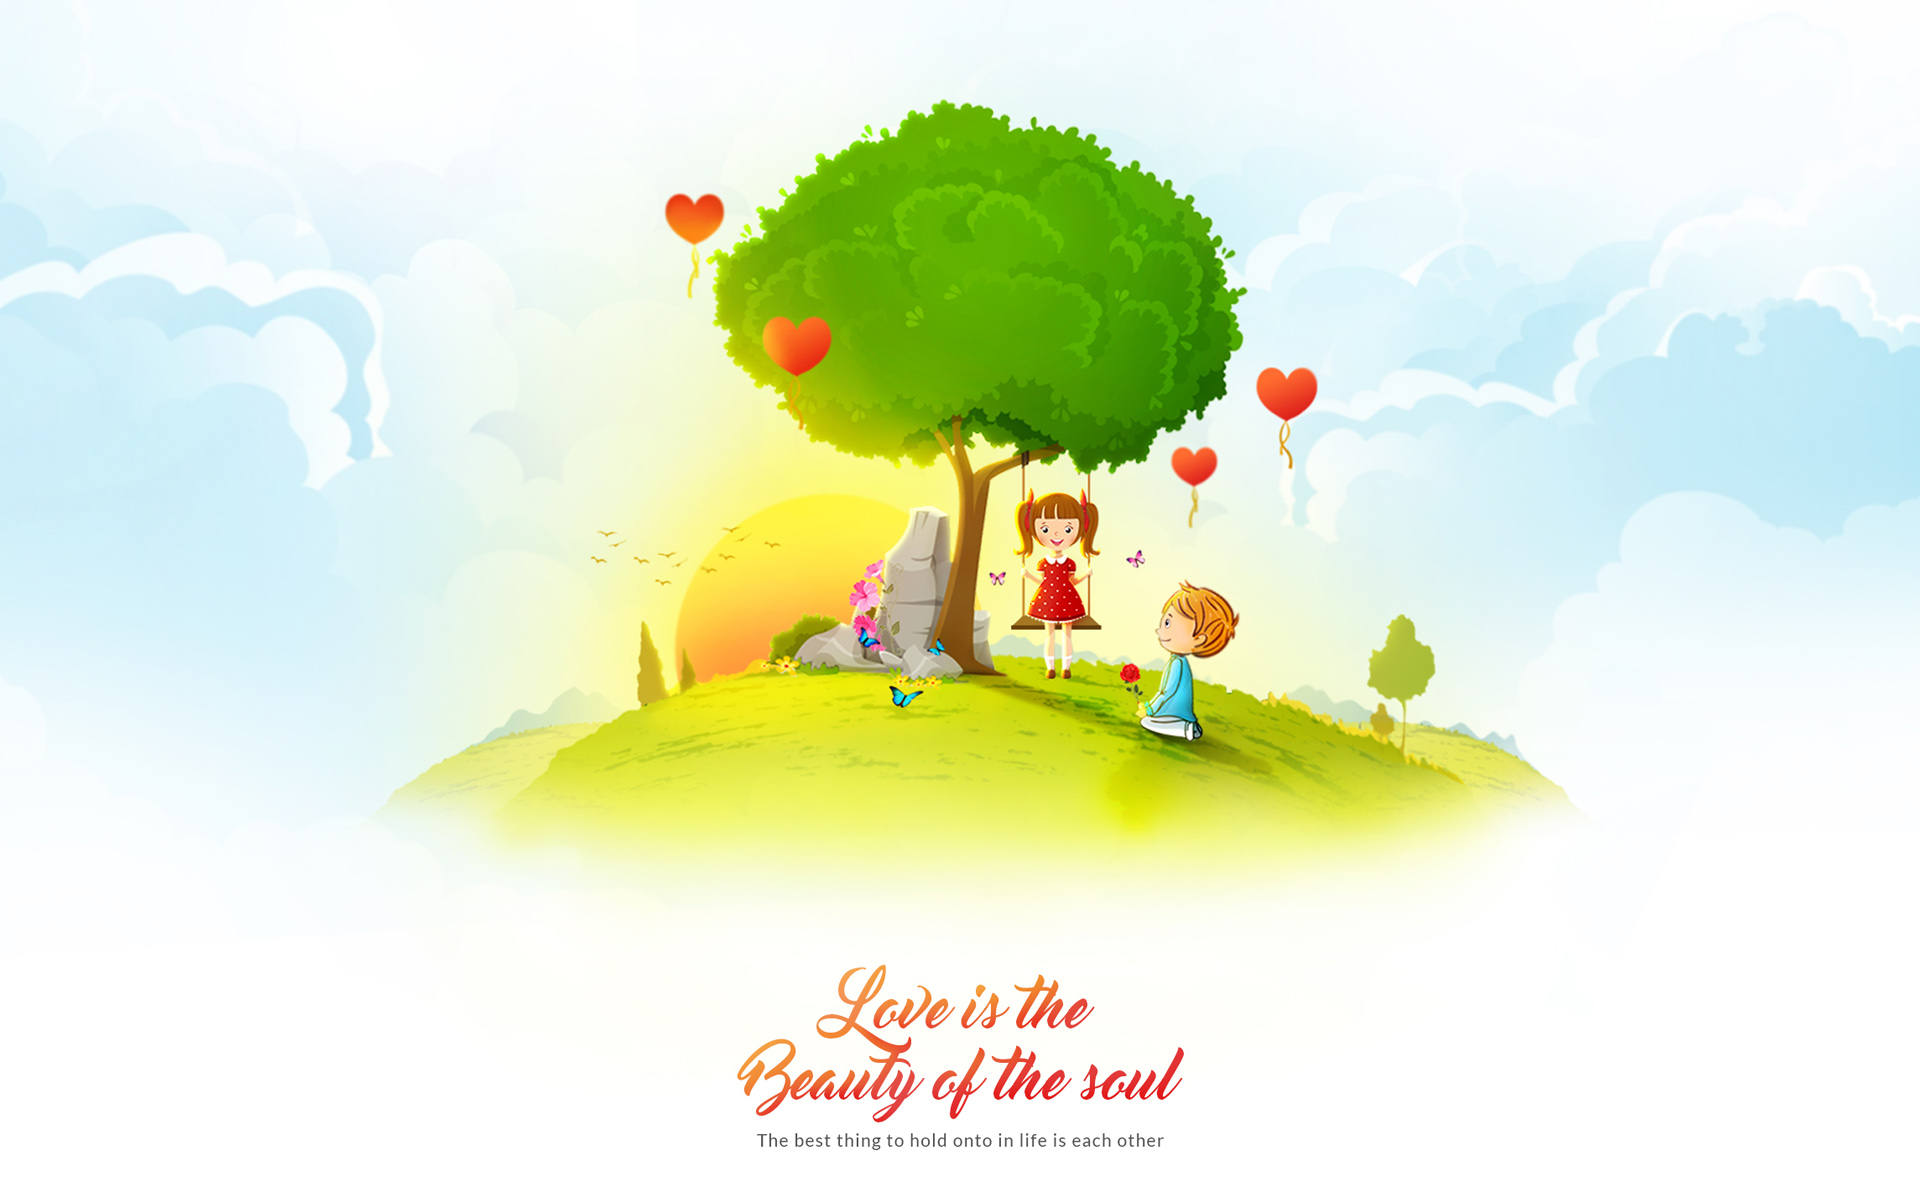 Love Beauty of Soul5001416930 - Love Beauty of Soul - Soul, Love, Beauty